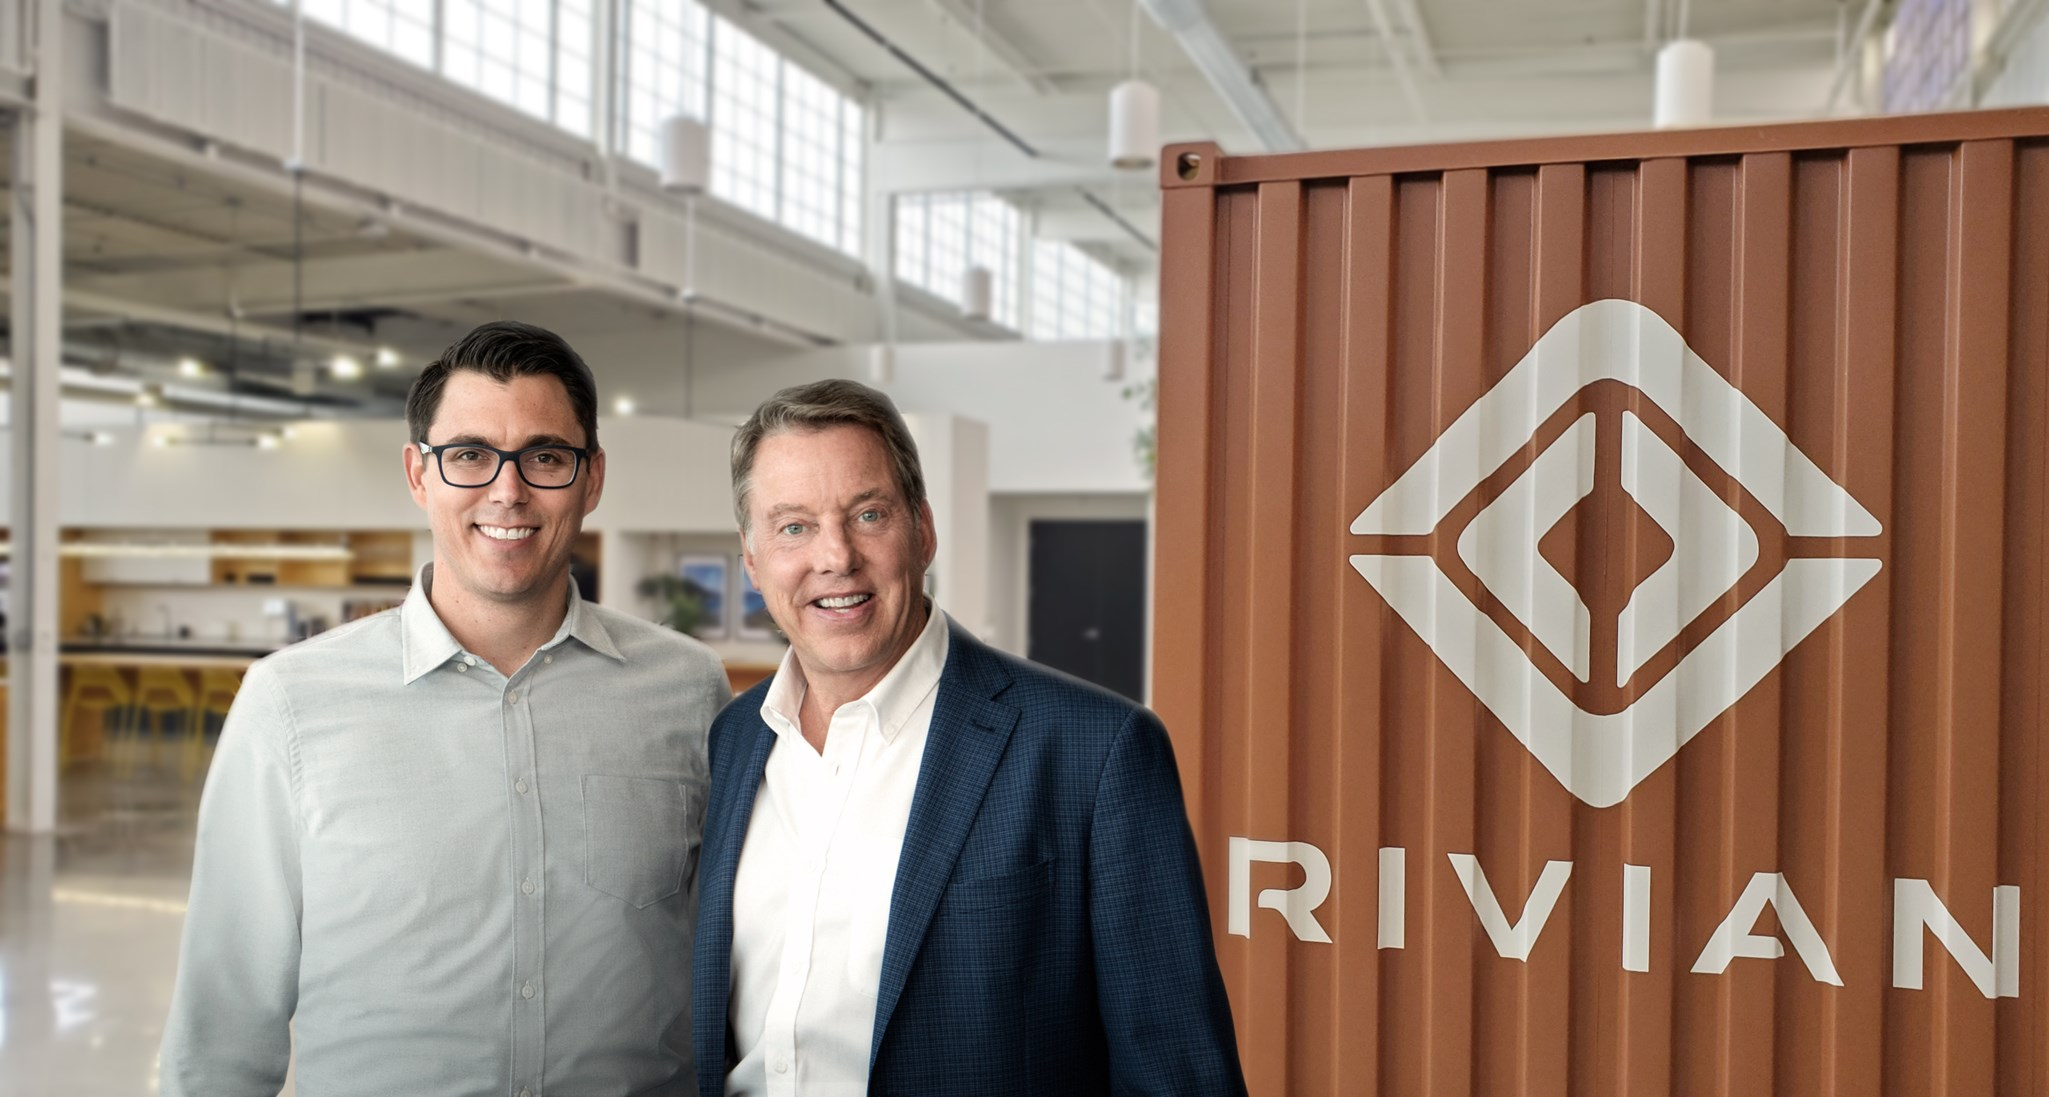 Ford to build Rivian-based EV after $500M investment deal